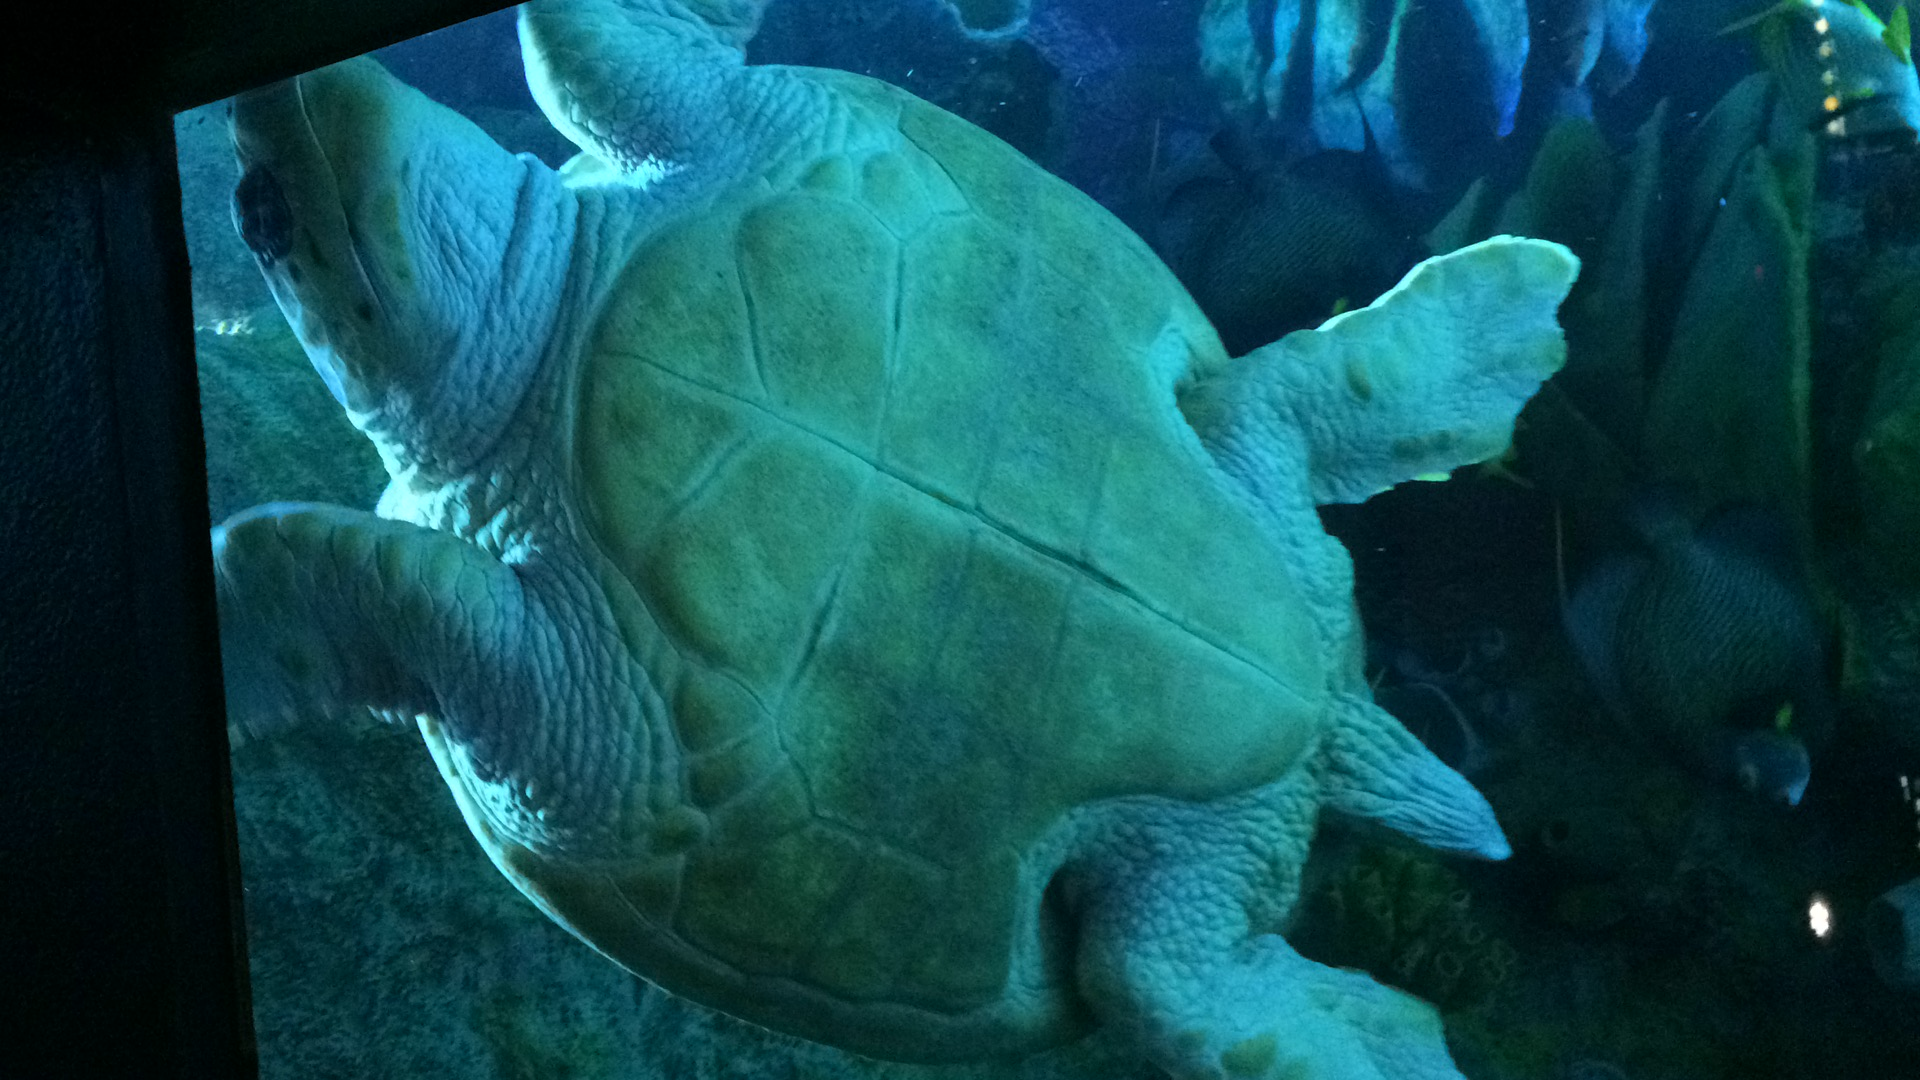 This turtle was inside the big tank that I mentioned